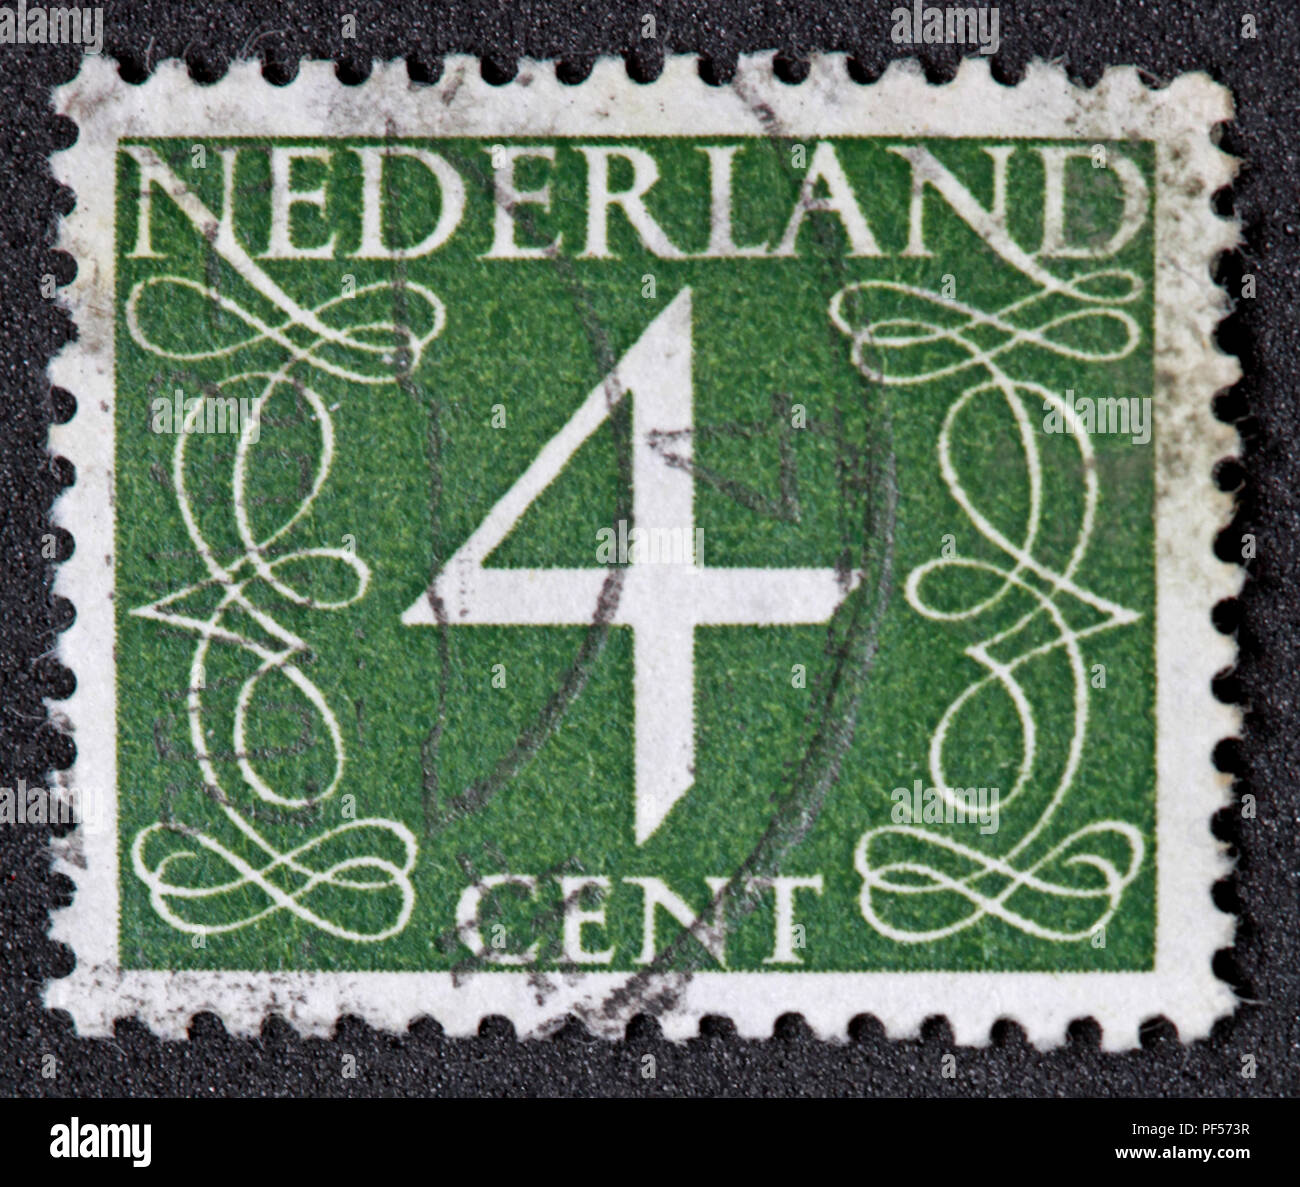 Used franked Nederland Netherlands Stamp, Green 4c Four Cent - Stock Image